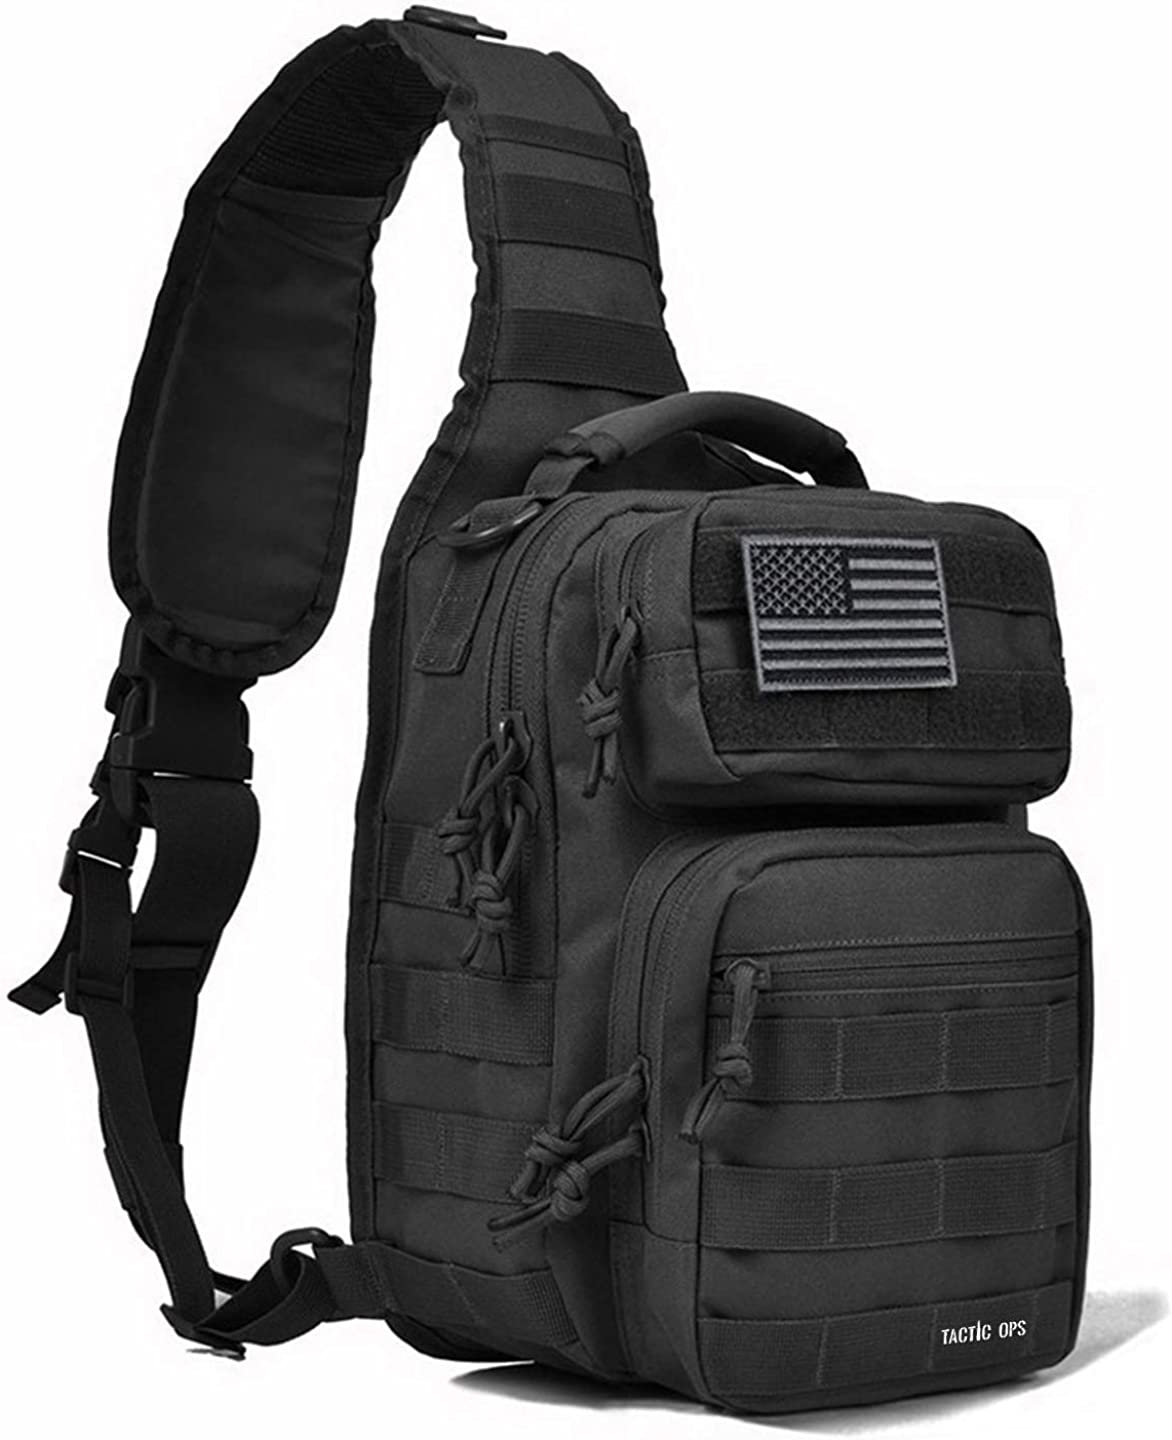 Tactical Sling Bag Backpack Pack Military Waterproof Assault Rover Shoulder Sling Molle Range Bag Everyday Carry EDC Diaper Bag Small Day Pack by Tactic Ops